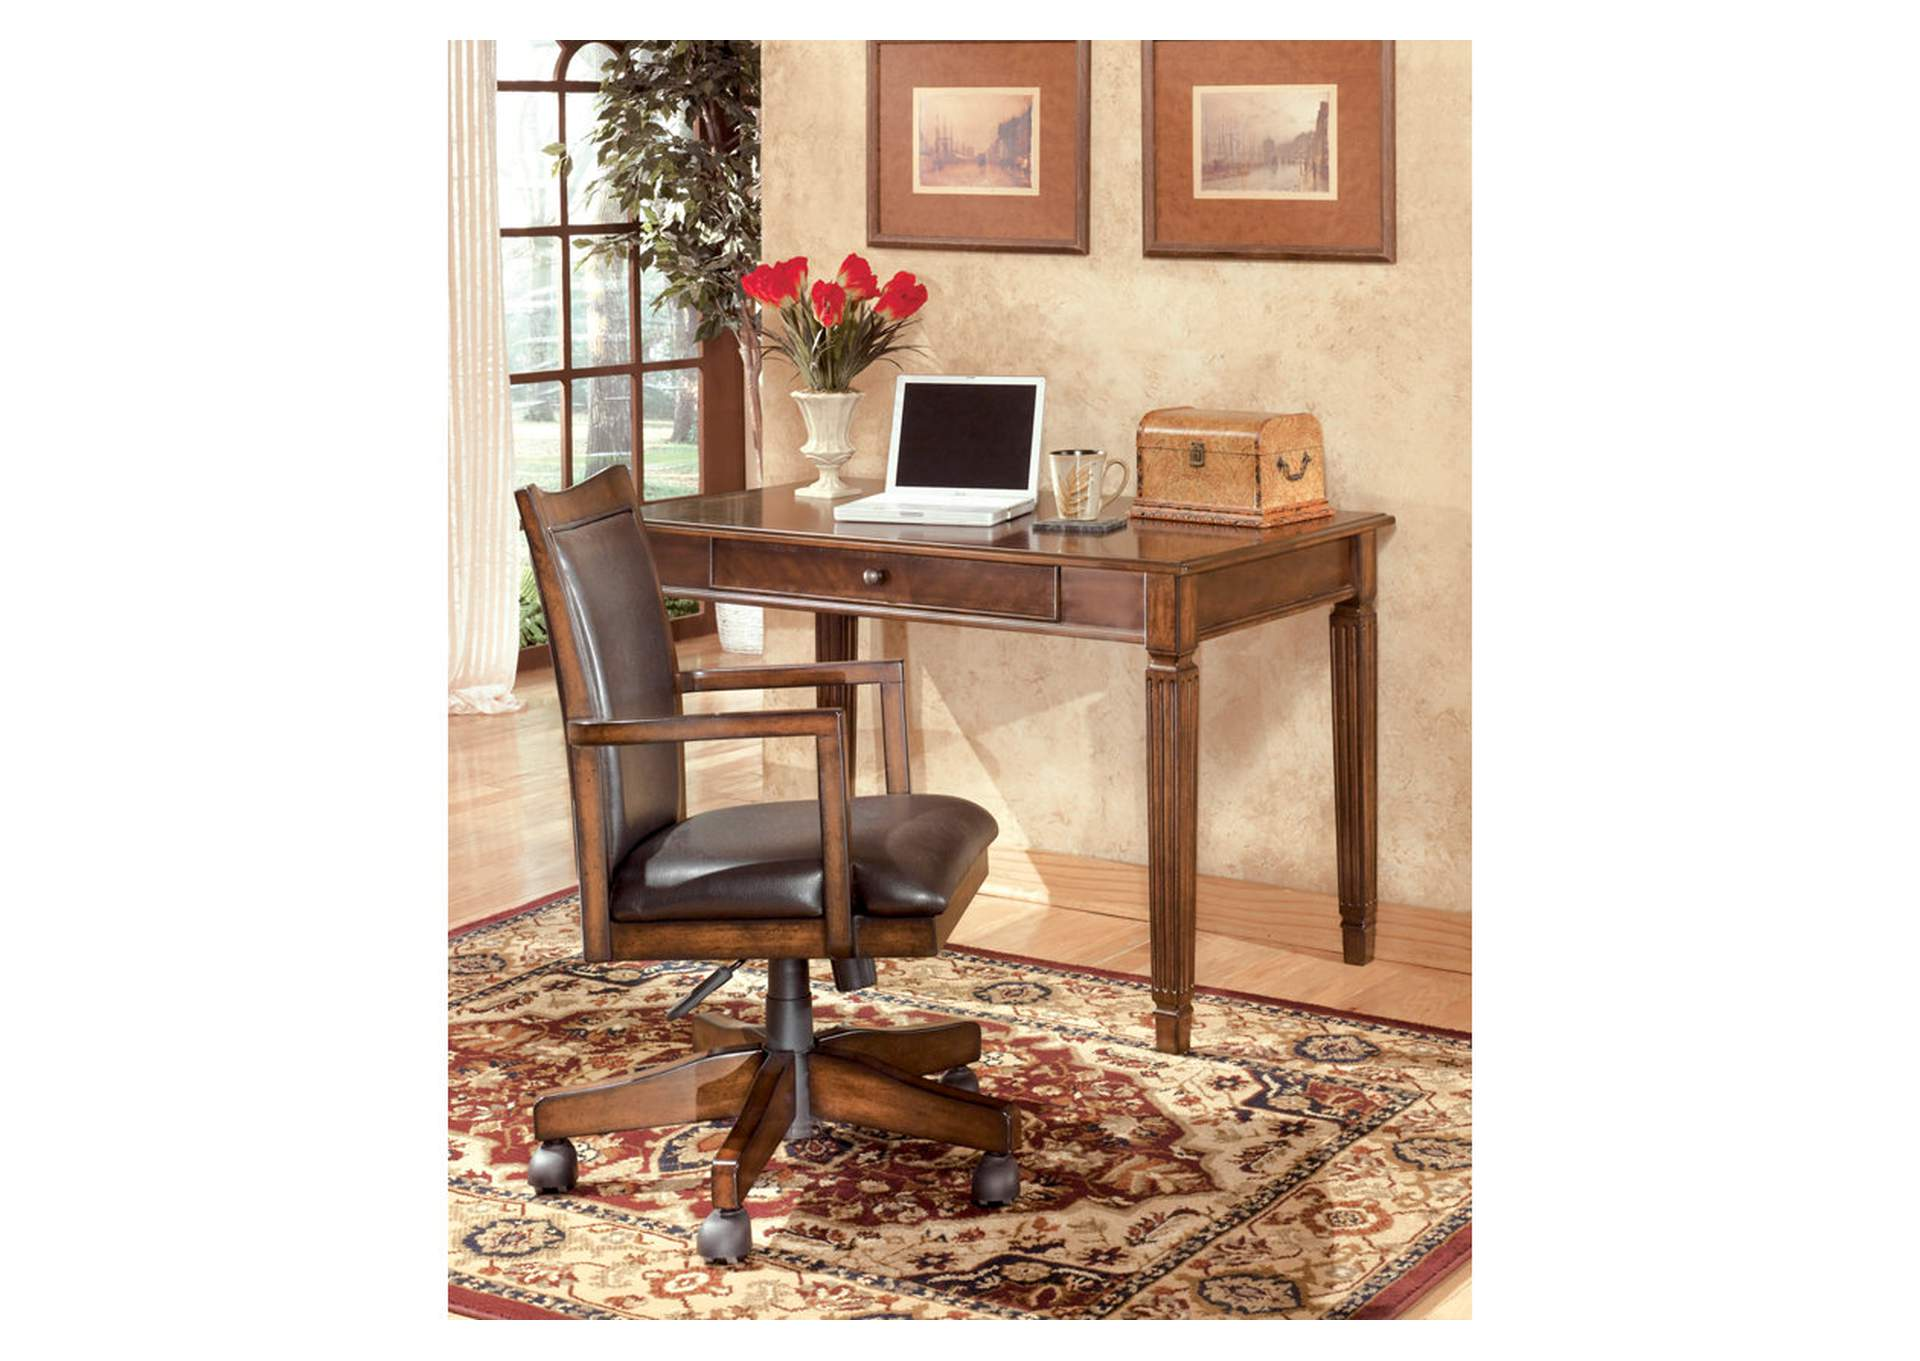 Hamlyn Medium Brown Swivel Desk Chair,Direct To Consumer Express